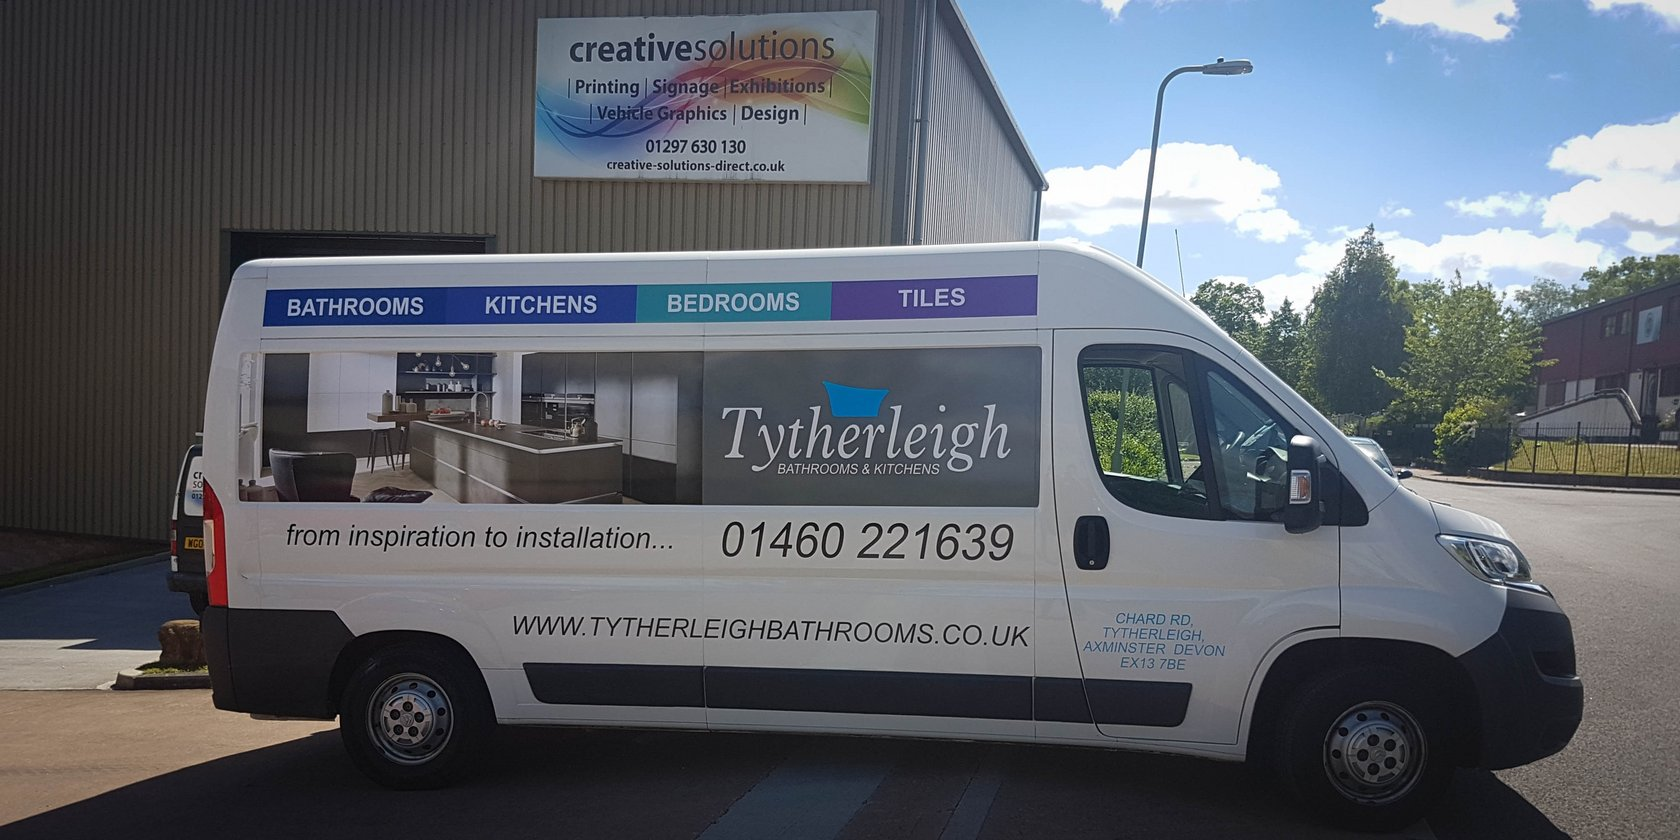 Tytherleigh Bathrooms Vehicle Graphics